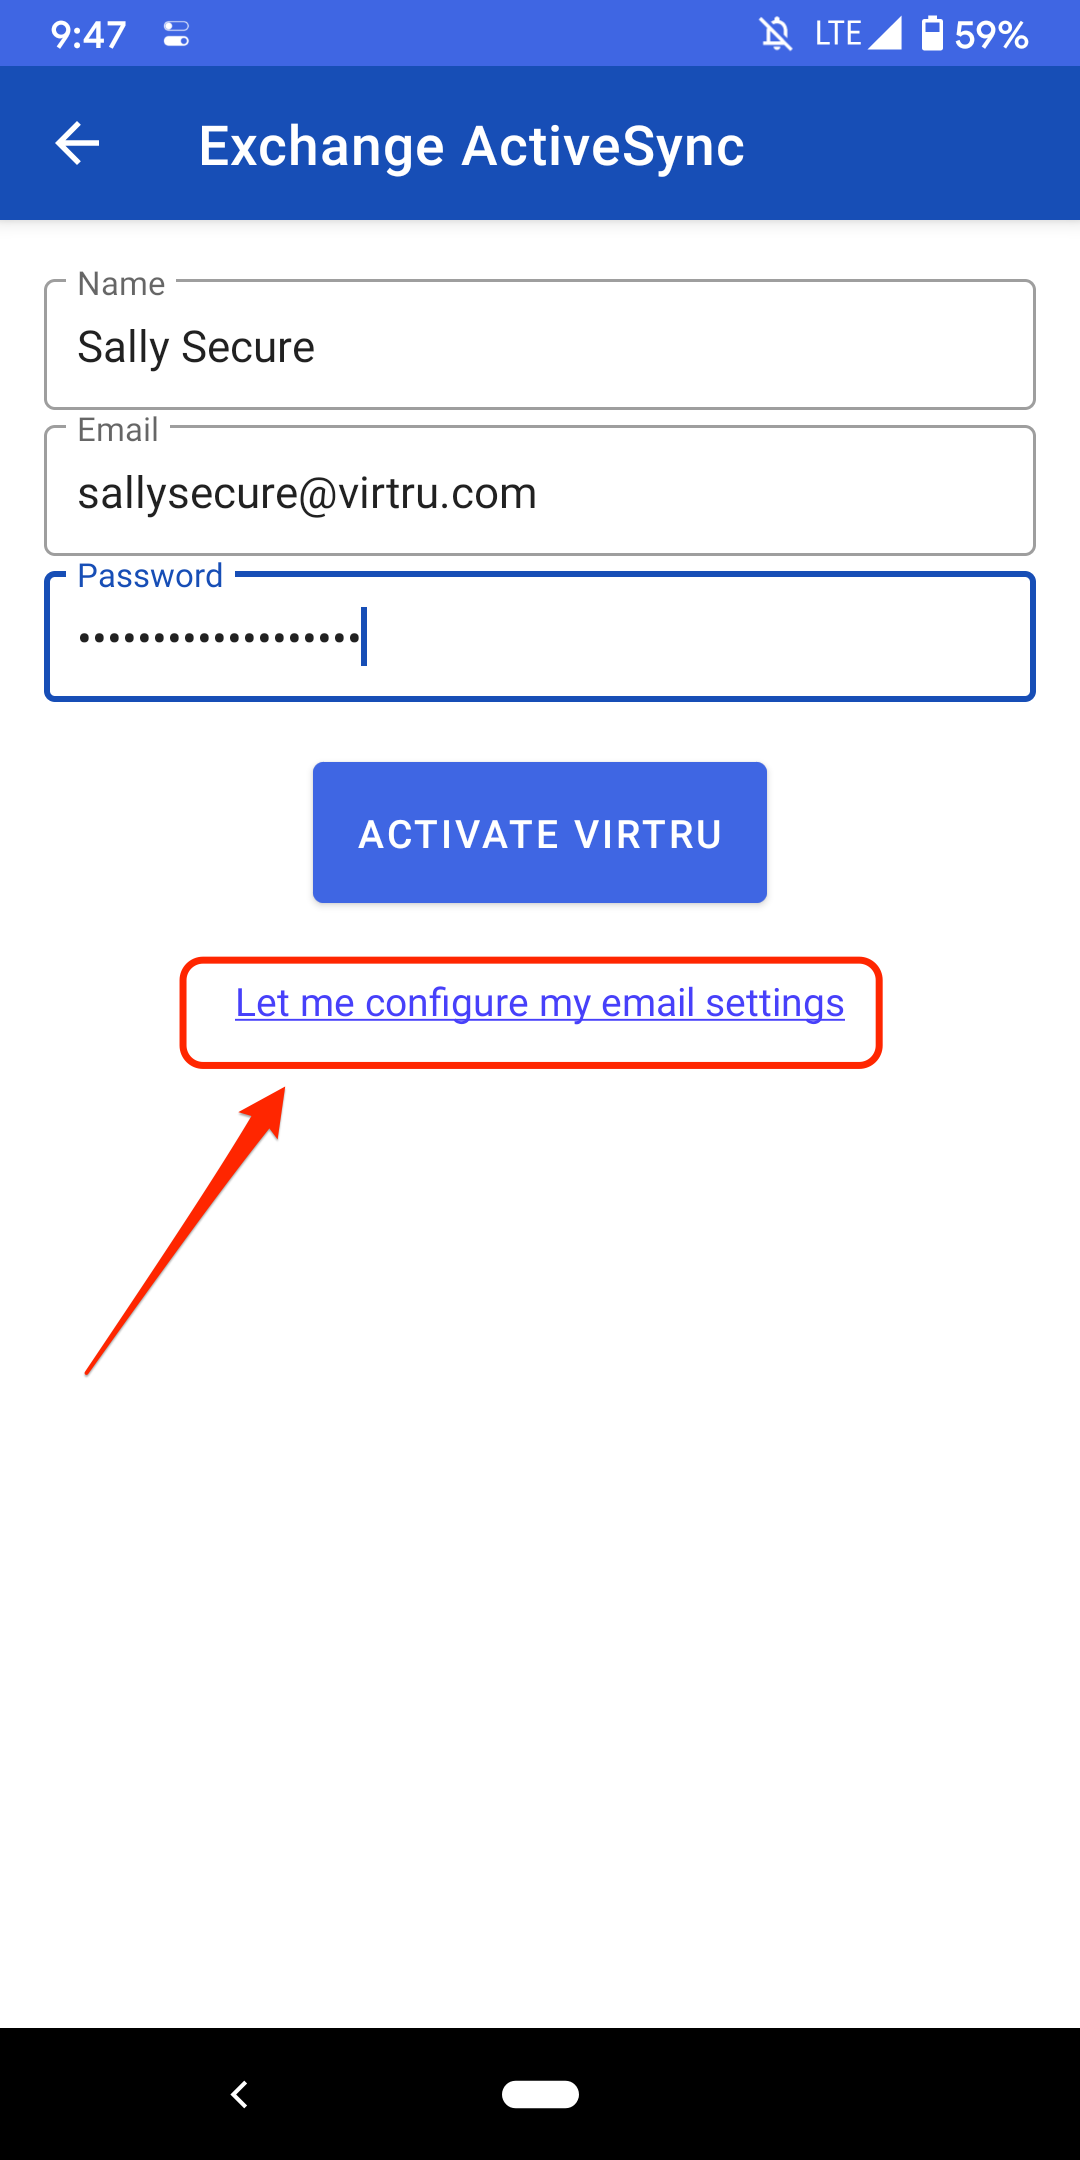 Exchange ActiveSync form filled out and let me configure my settings pointed out